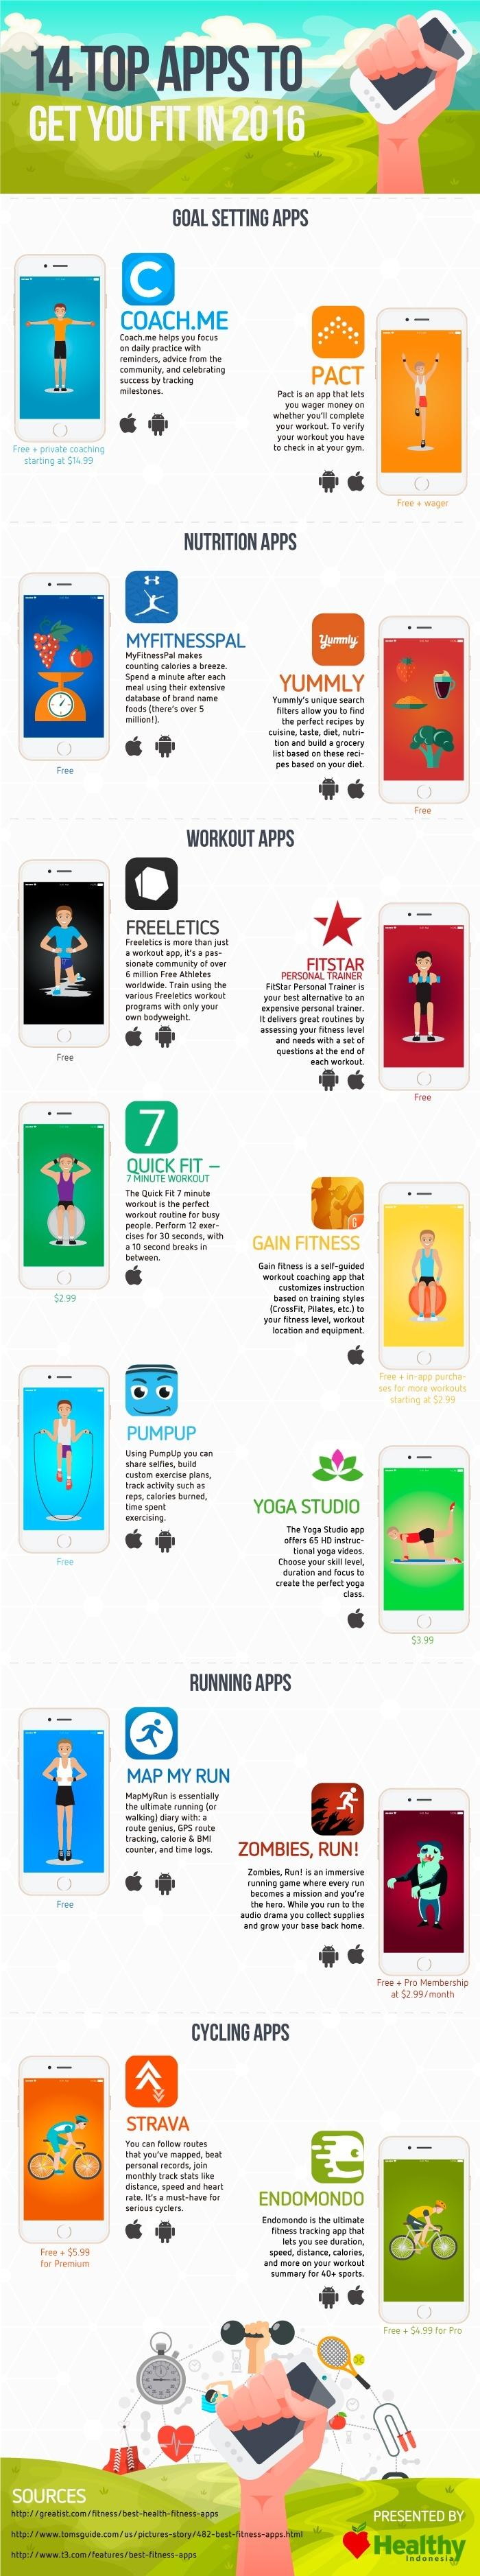 Health-&-Fitness-Apps-2016